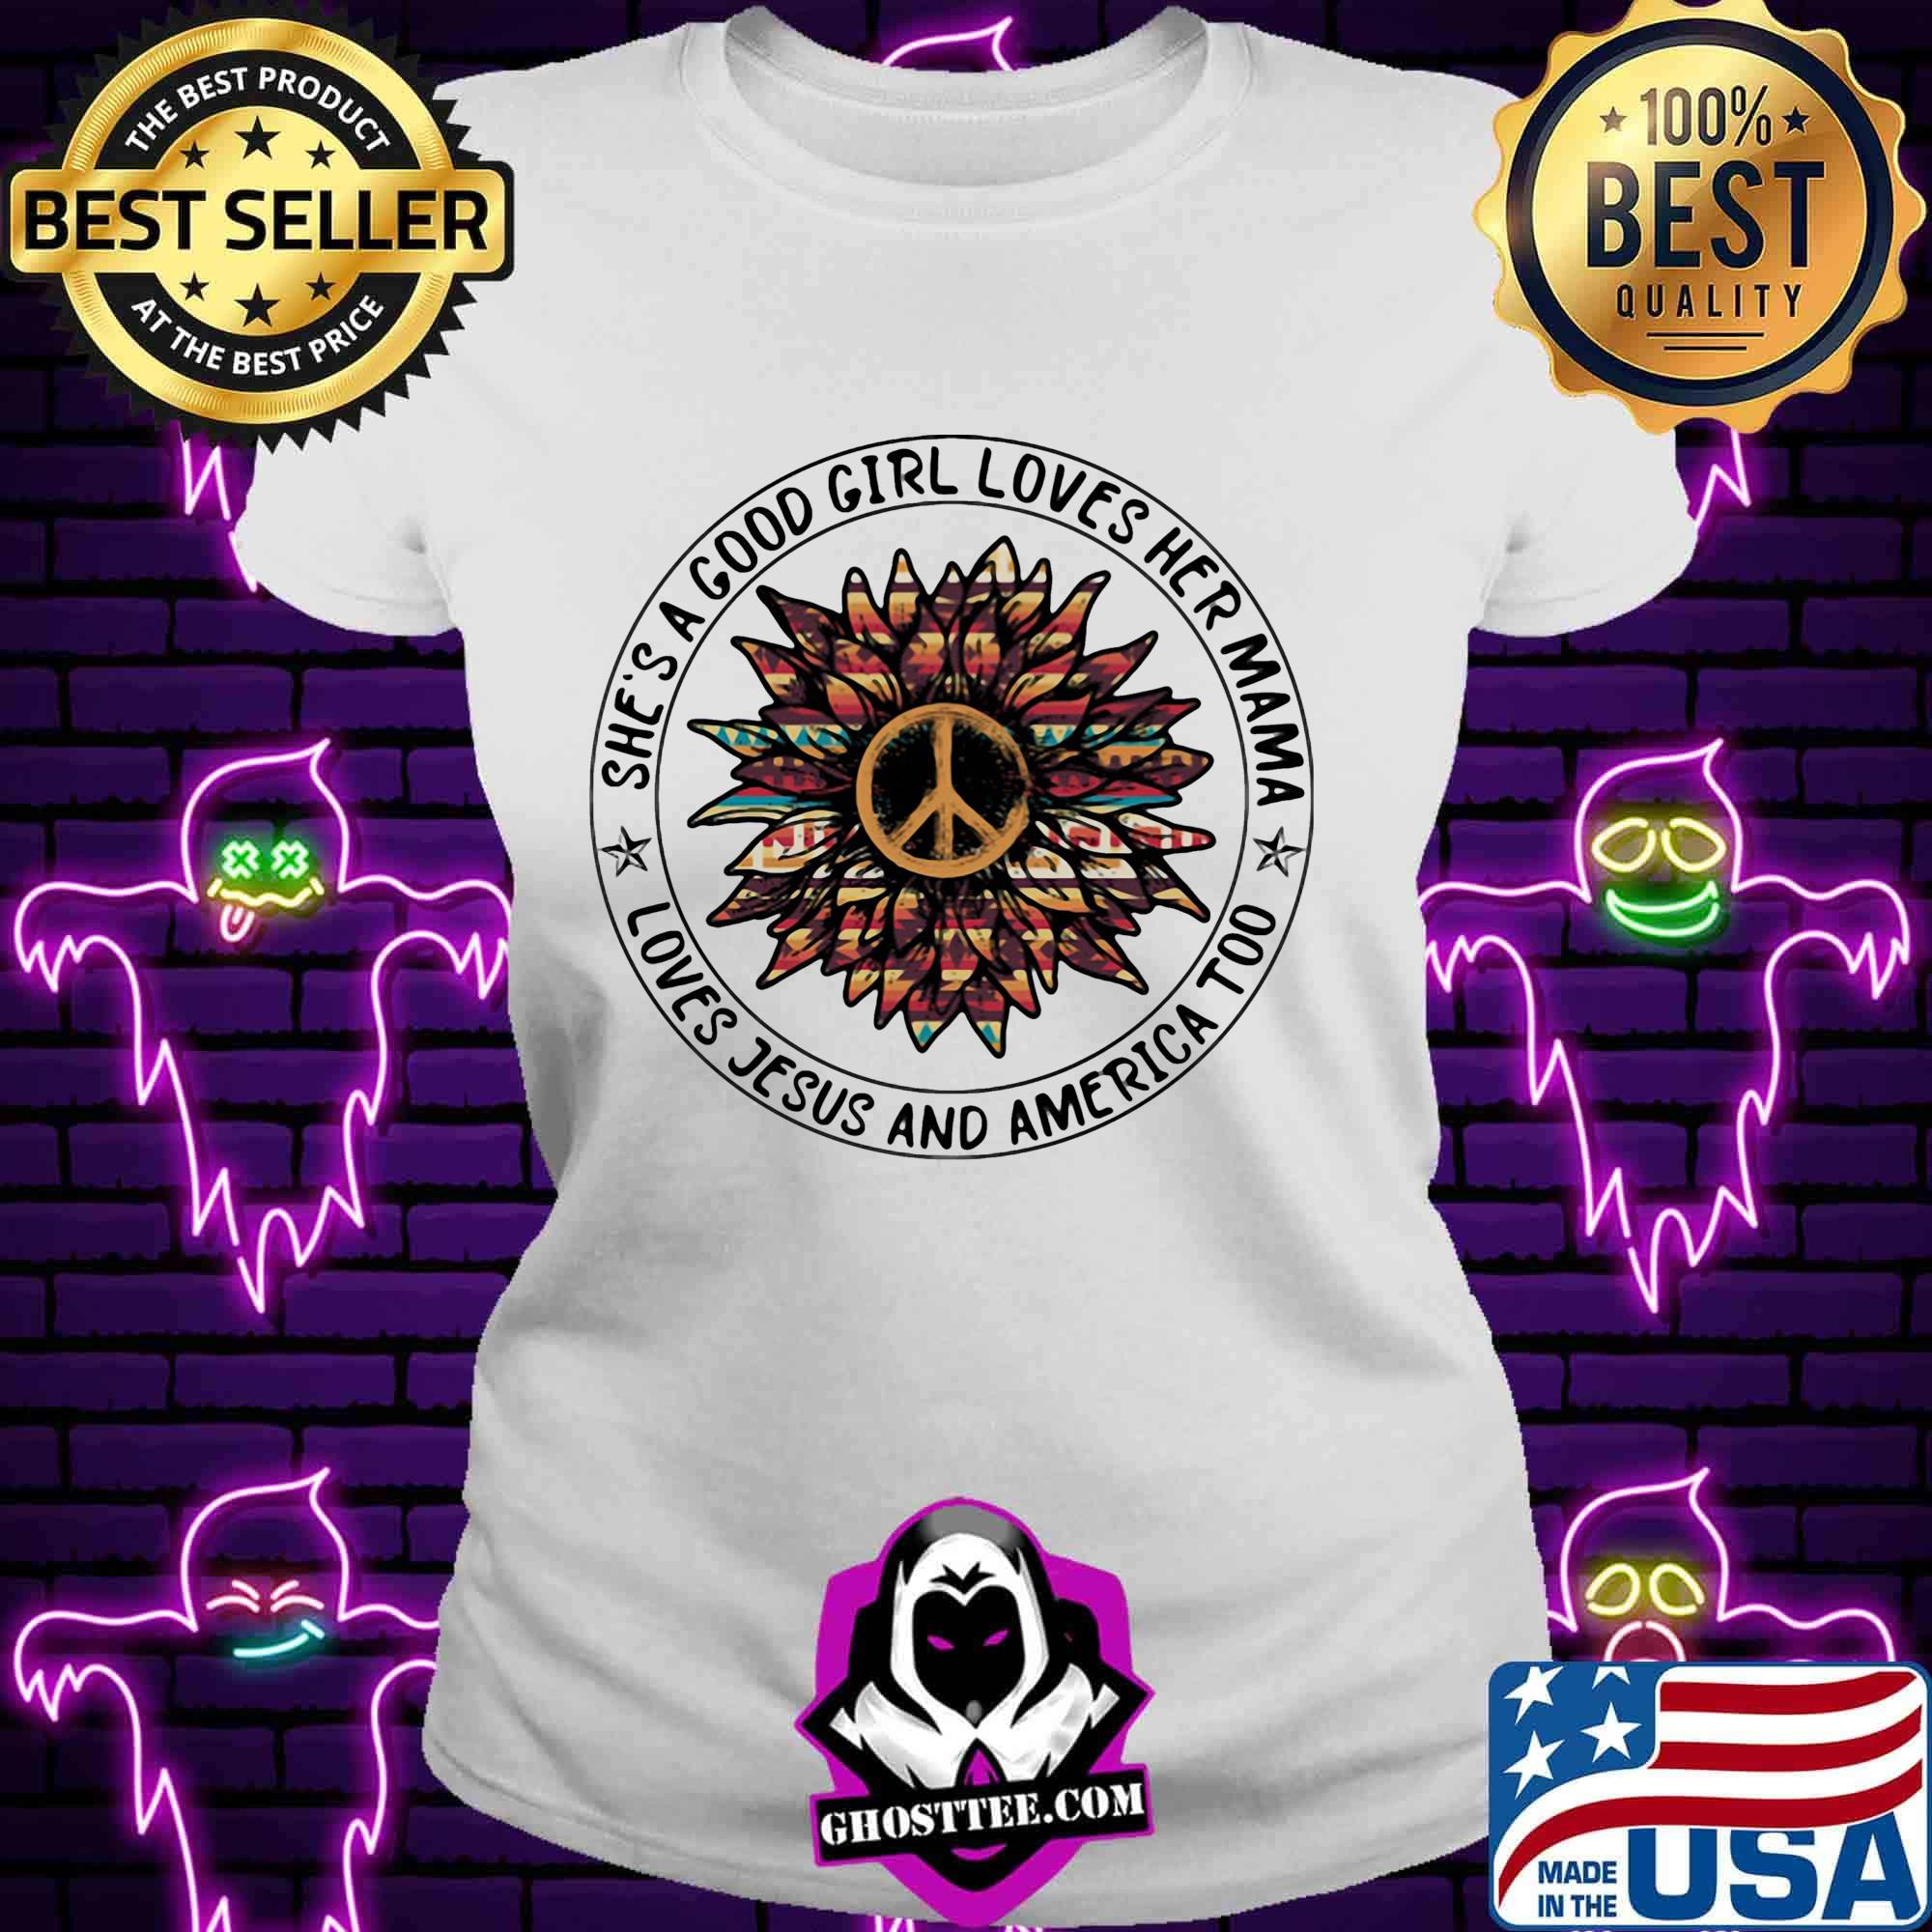 She's a good girl loves her mama loves jesus and america too peace independence day shirt